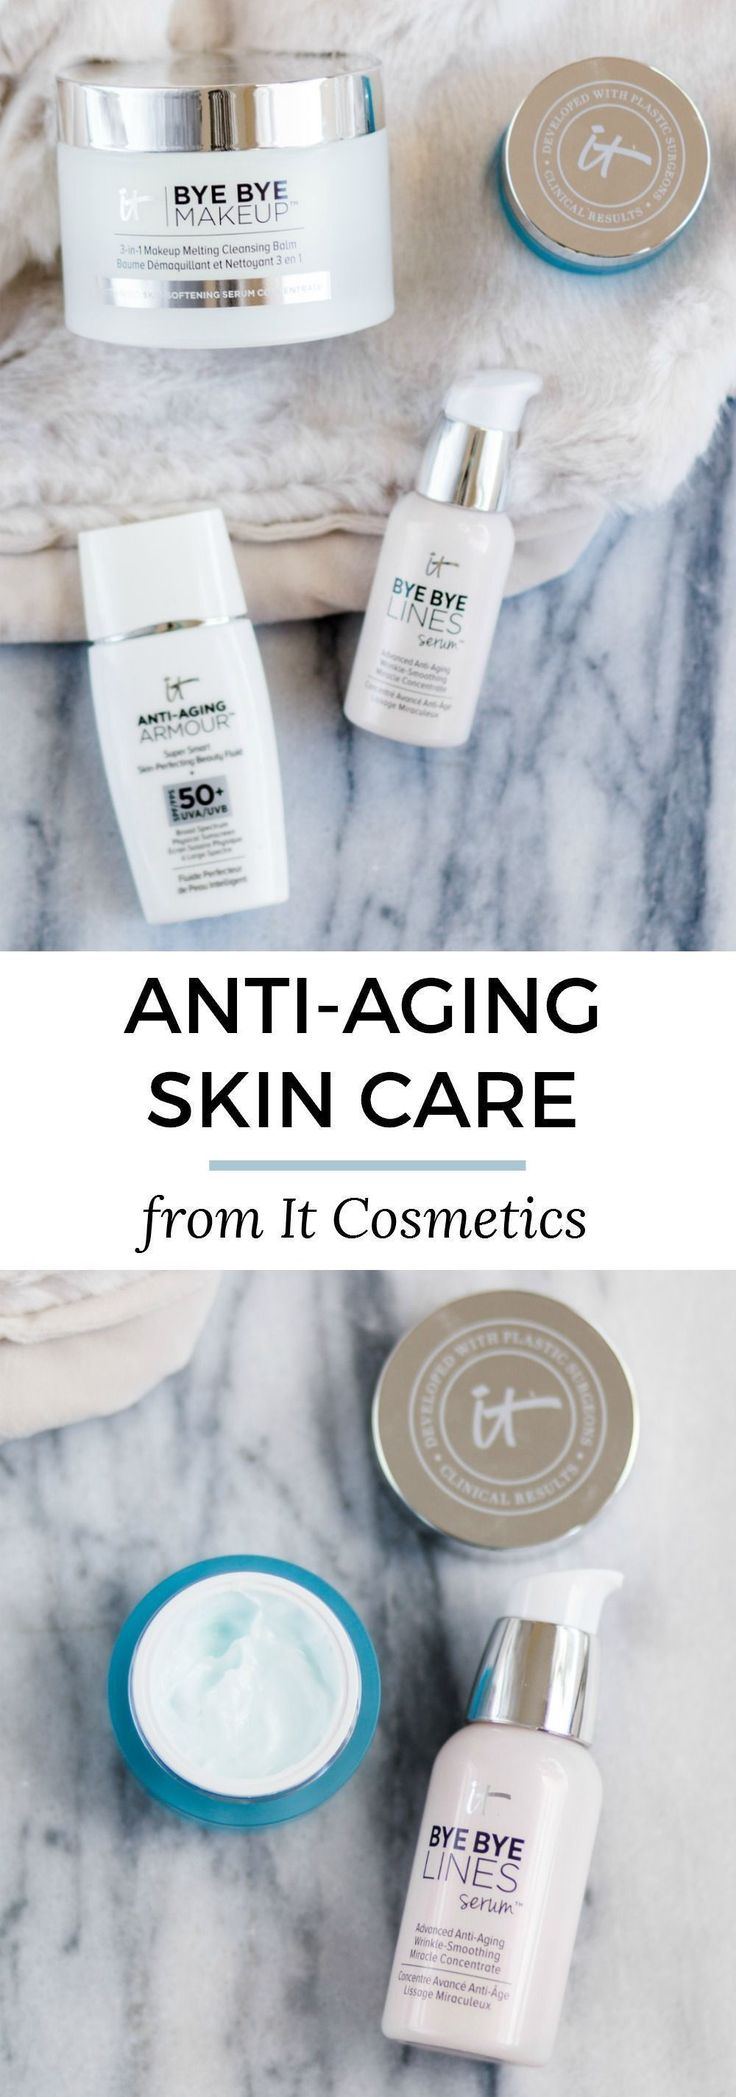 The best anti-aging skincare products from the It Cosmetics at Sephora Collection. Click through this pin to see an honest review of the collection including the anti-aging sunscreen, serum, cleansing balm, eye cream, and more from Florida beauty blogger Ashley Brooke Nicholas #antiagingcreamreviews